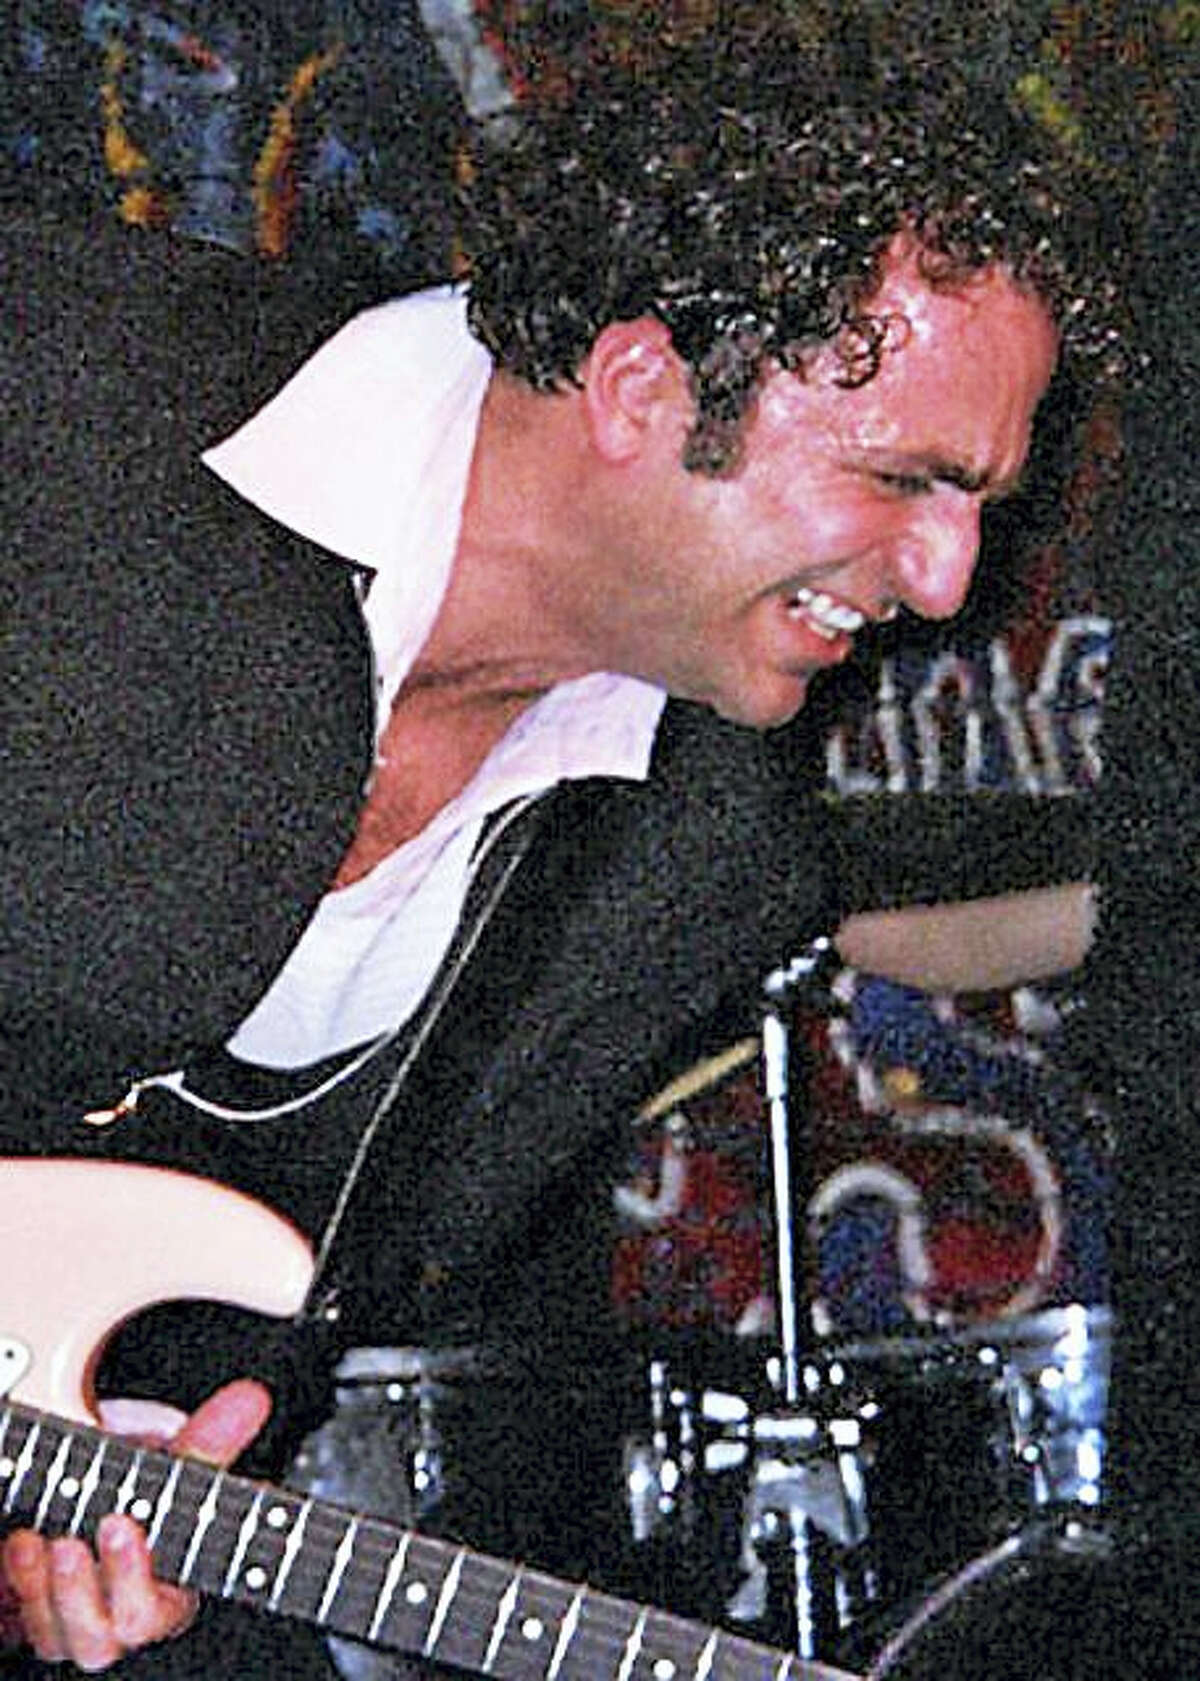 Jeff Pitchell & Texas Flood will play at the Black-eyed and Blues Fest at Bushnell Park Hartford on Saturday.